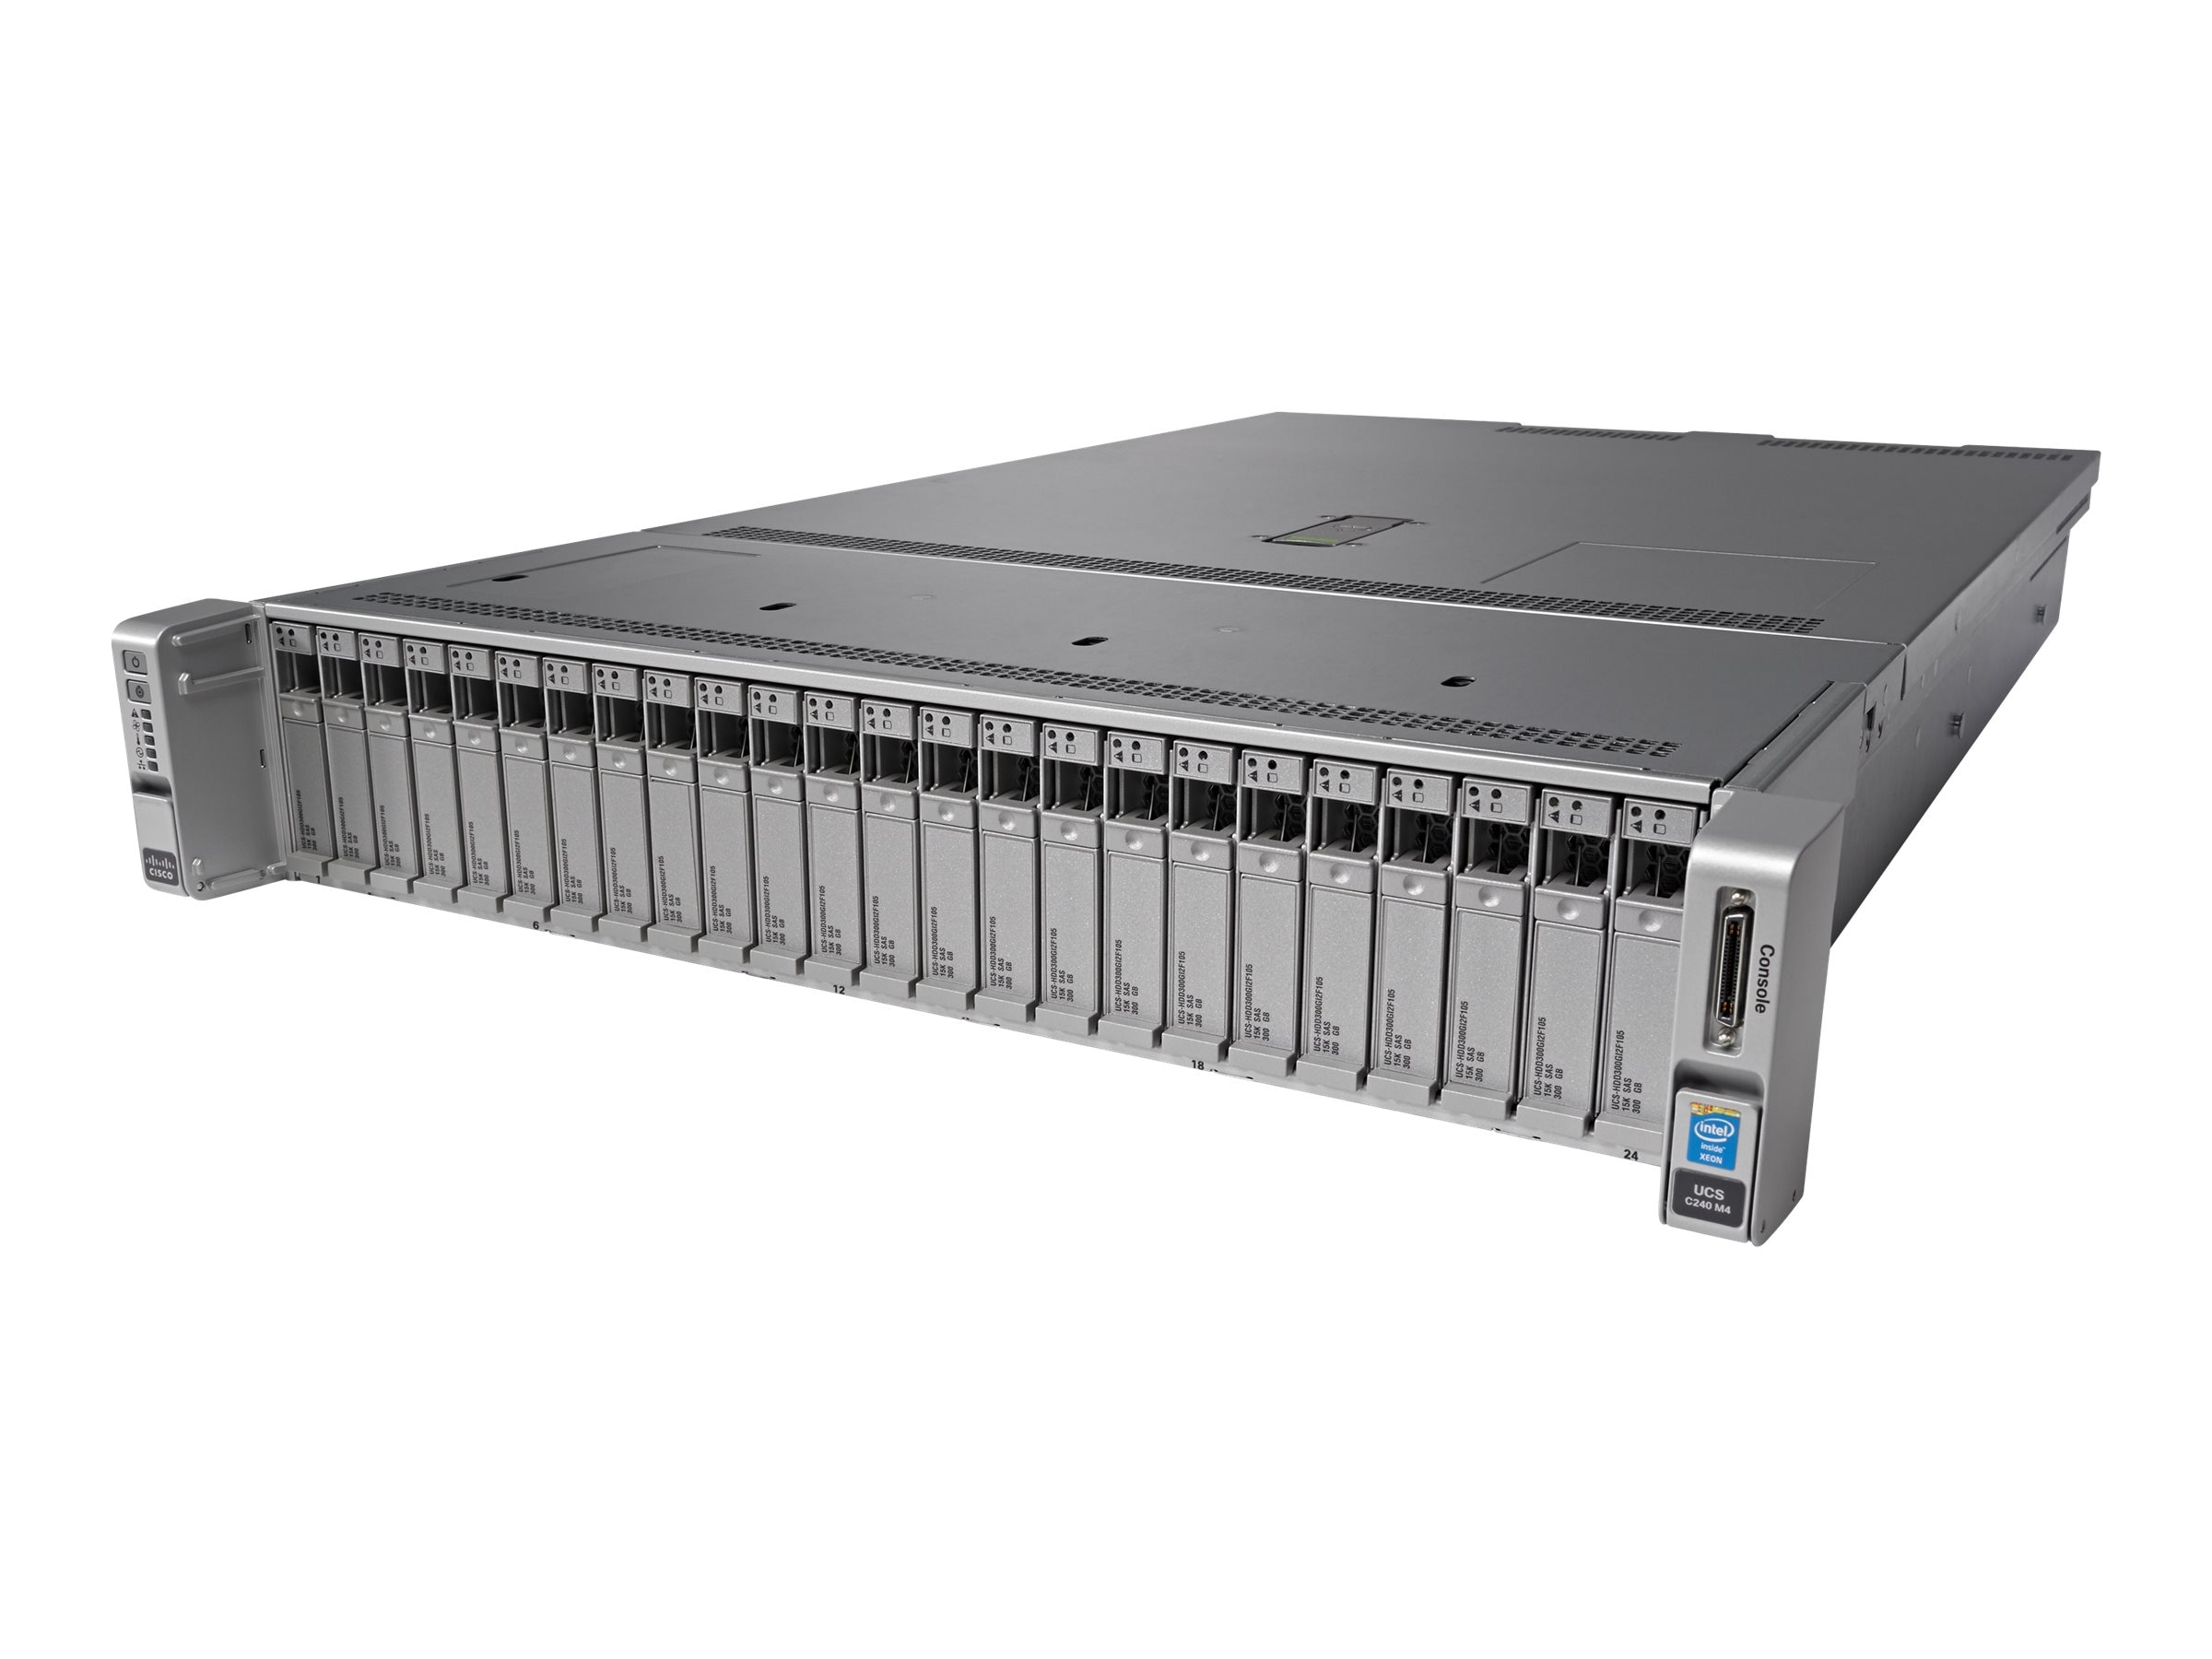 Cisco UCS SP C240 M4SX Std2 (2x)Xeon E5-2620 v4 128GB VIC1227